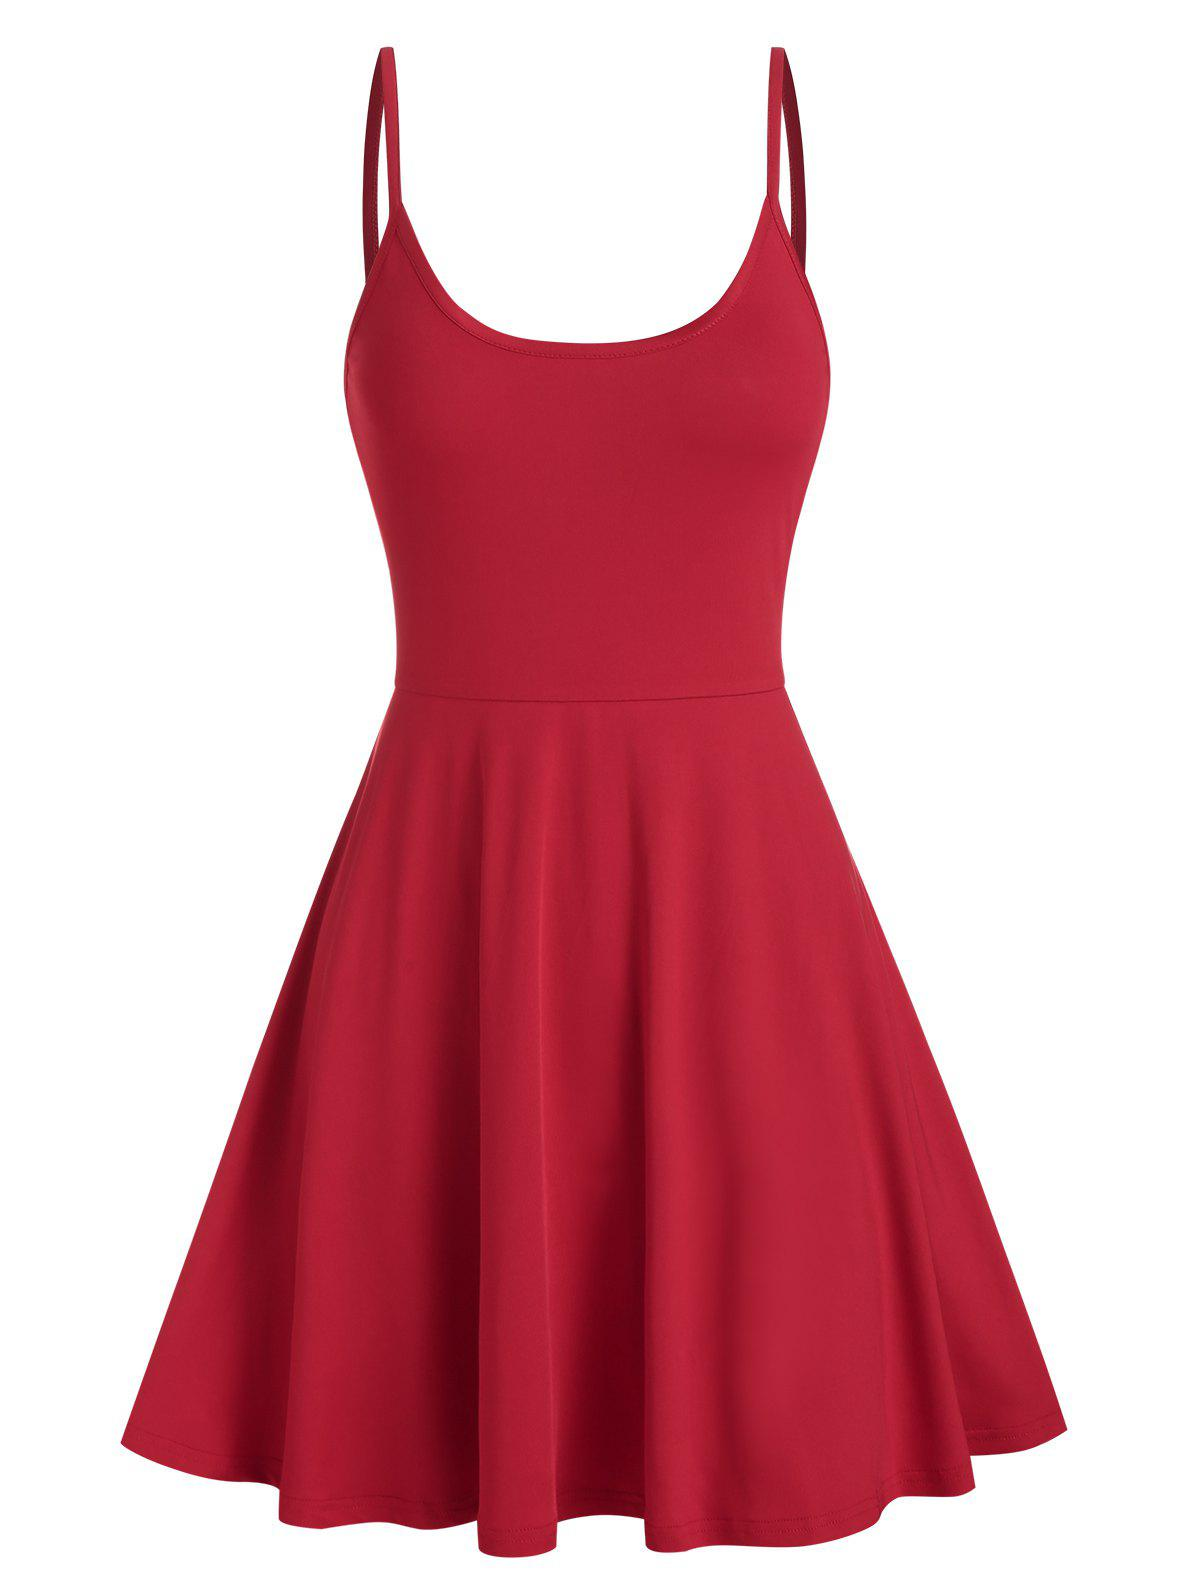 Spaghetti Strap Plain Flare Dress - RED S